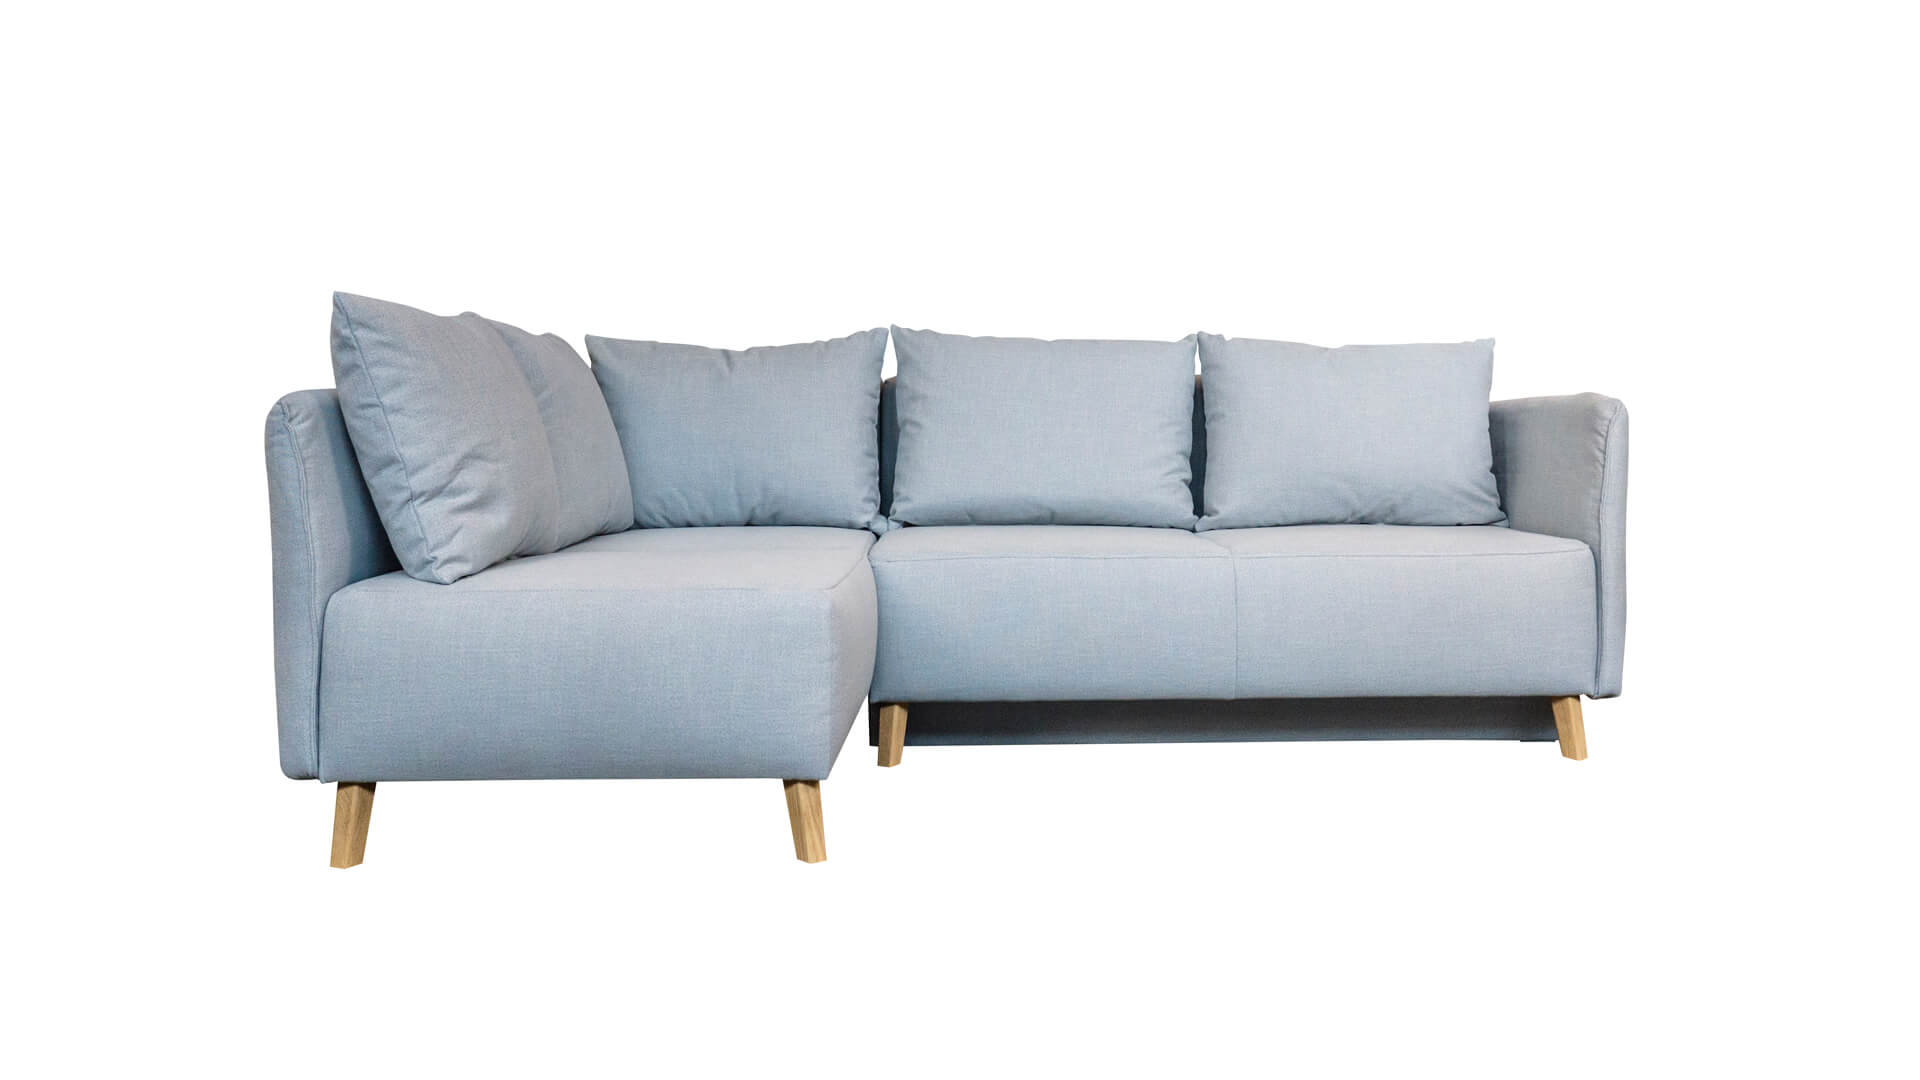 Beautiful sofa skandinavischer stil ideas for Sofa nordisch